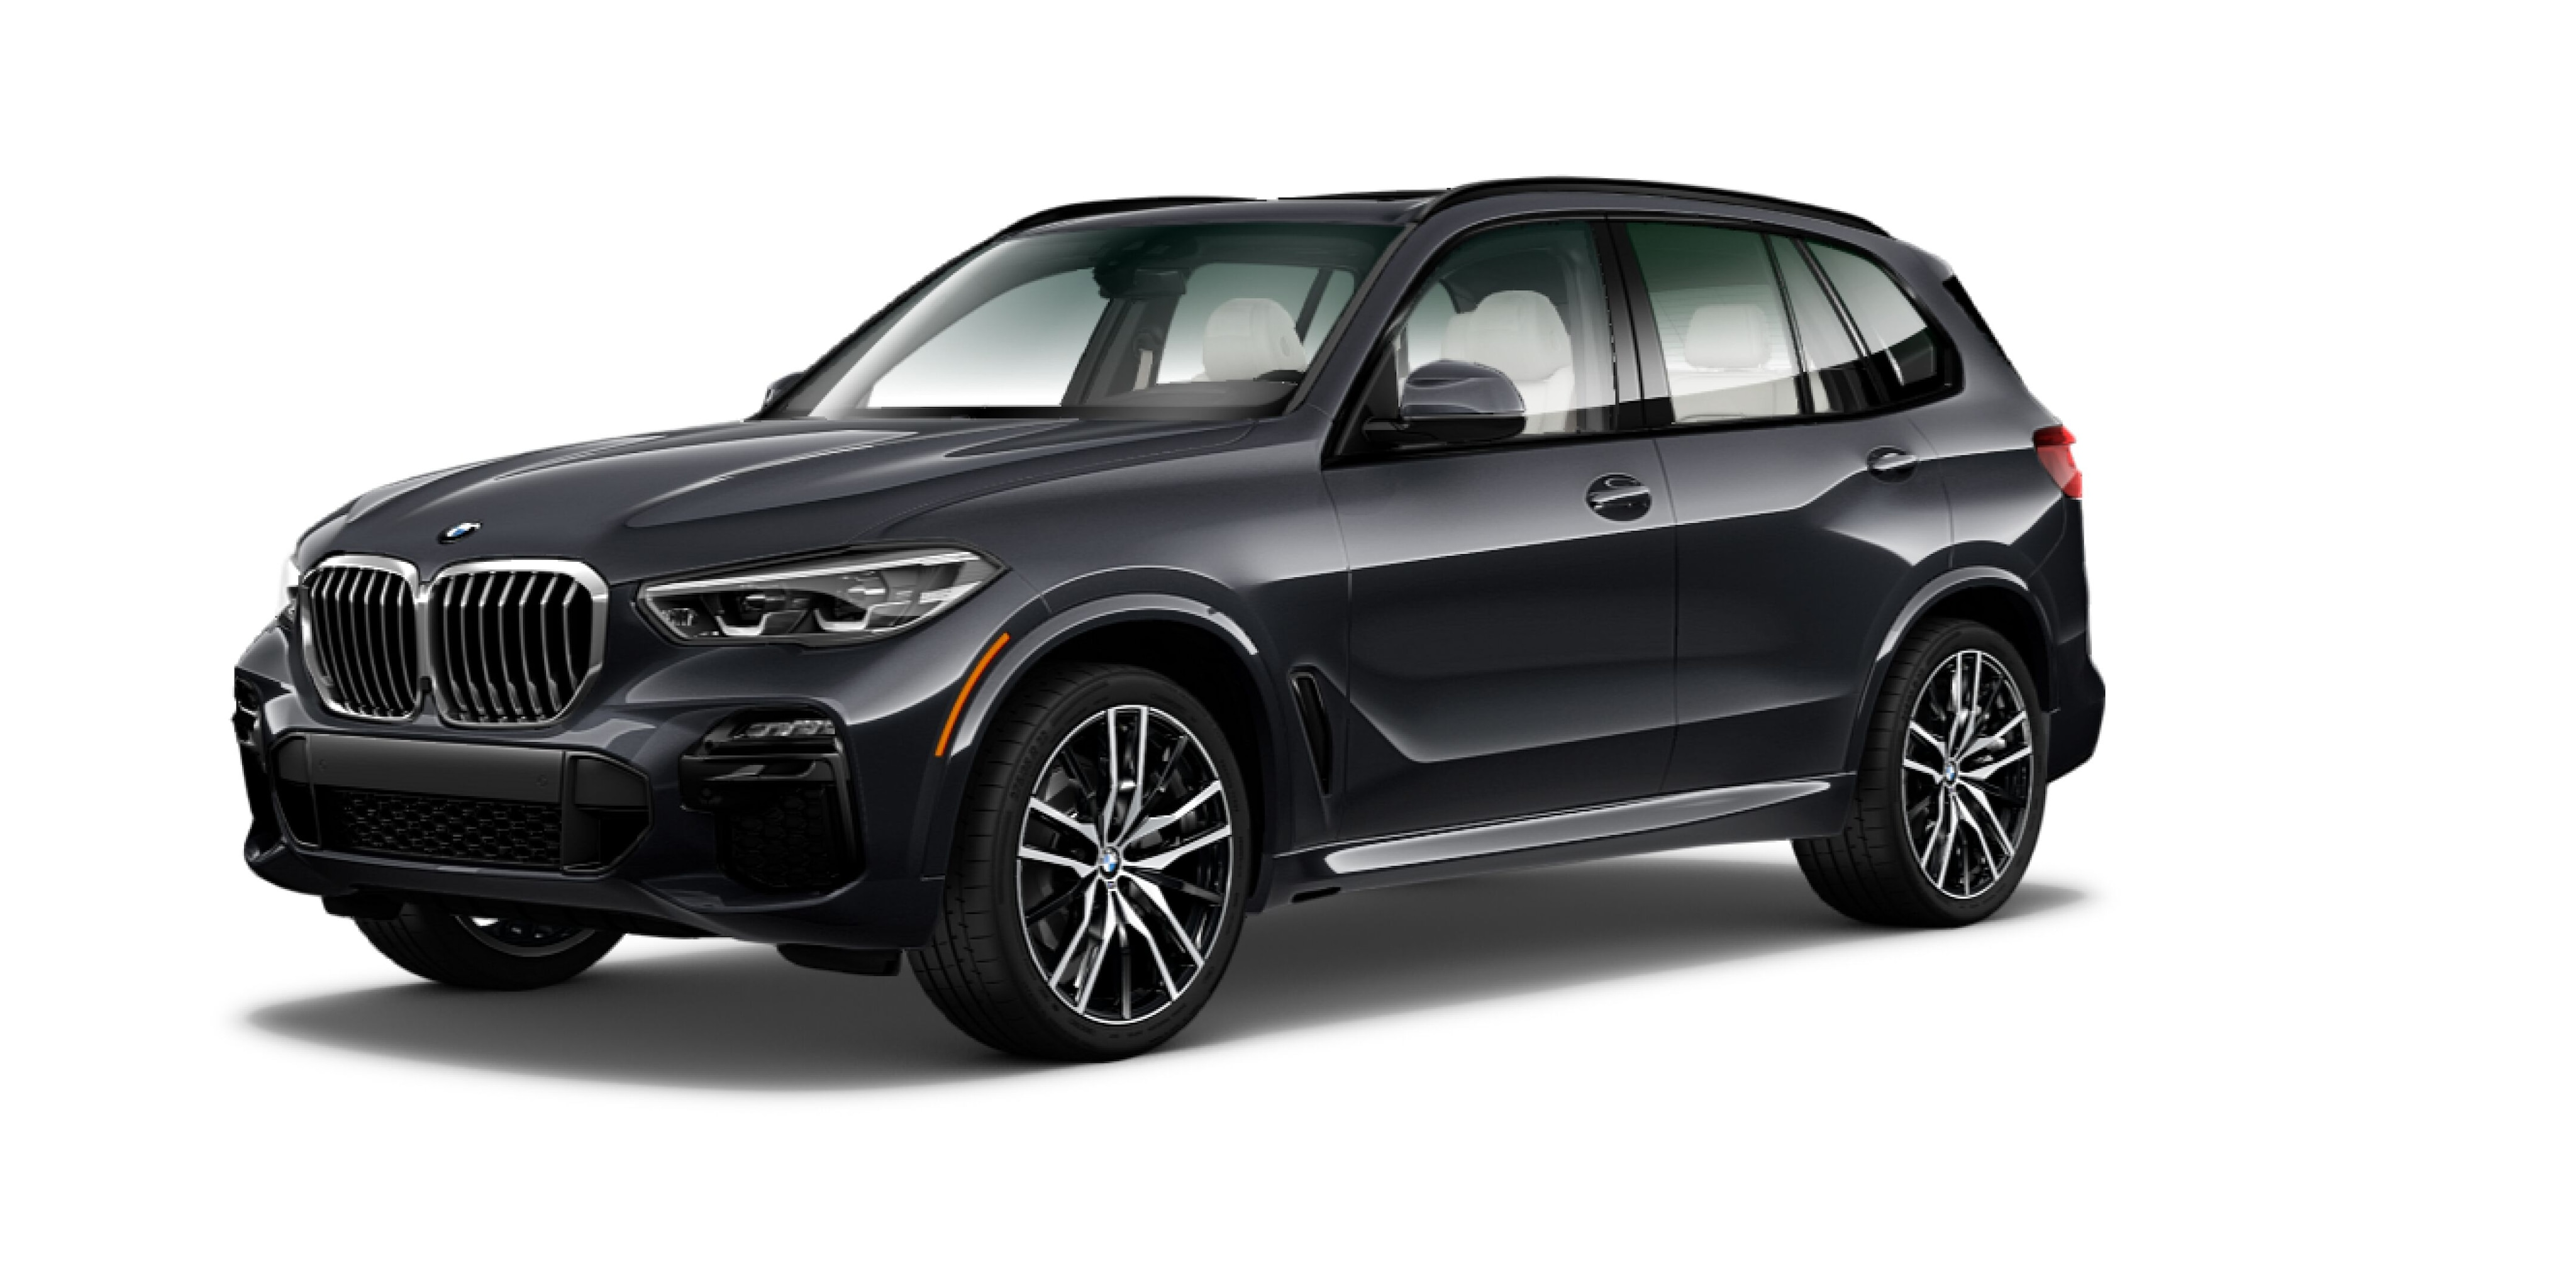 Bmw X5 Lease >> Bmw X5 Lease Deals Benefits Of Leasing Lincoln Ne